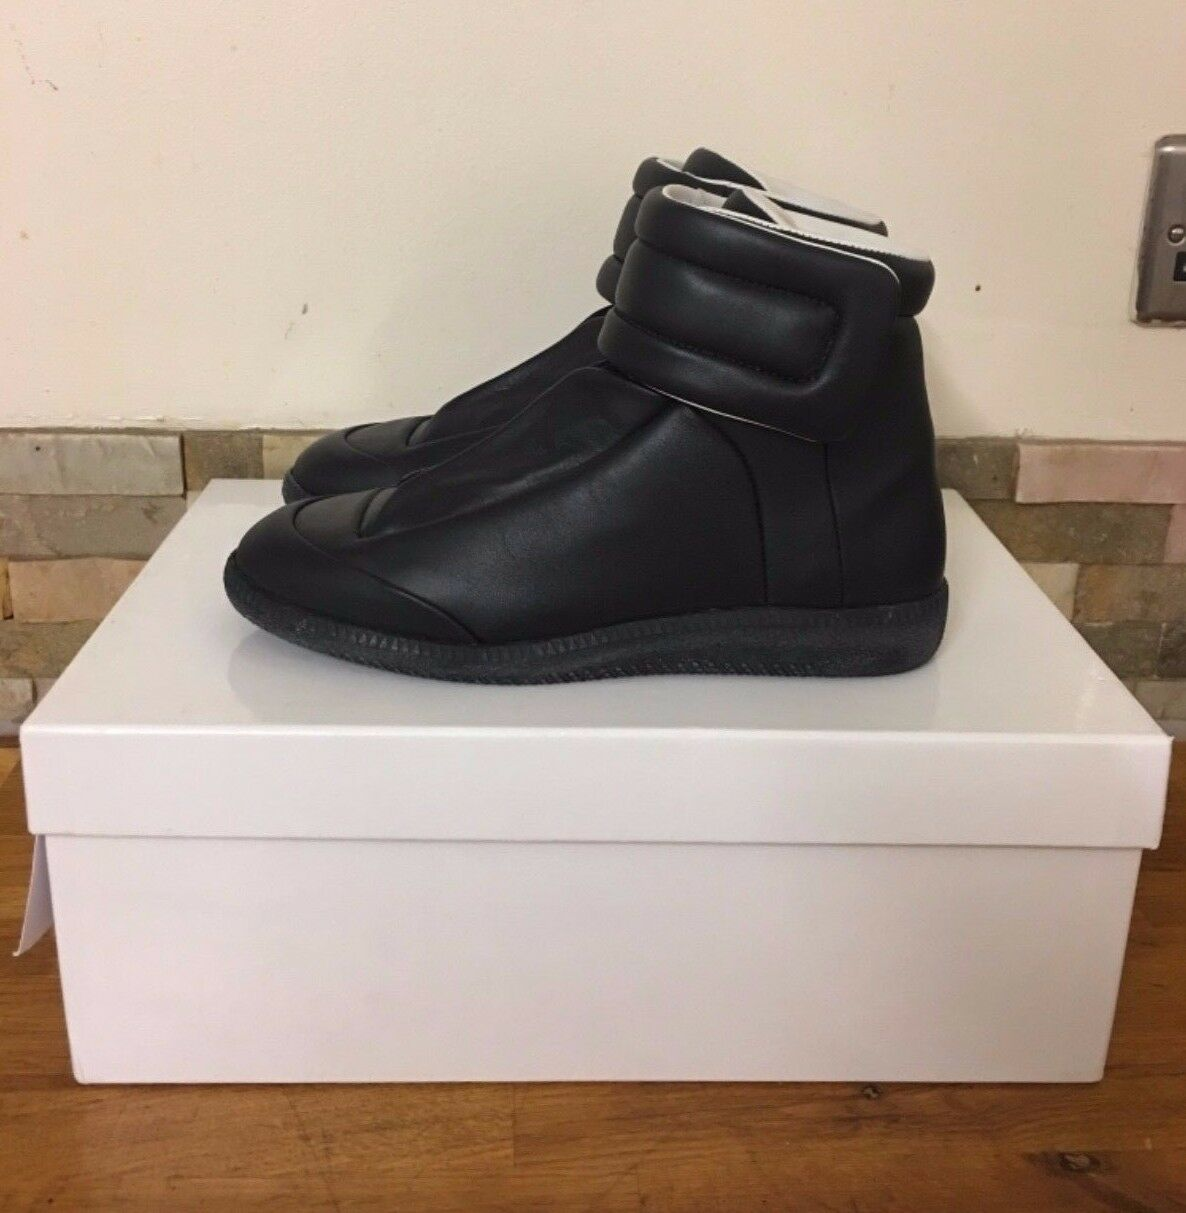 MAISON MARTIN MARGIELA  Future High Top Trainers Sneakers Size Size Size UK 3 EU 36 5047c0